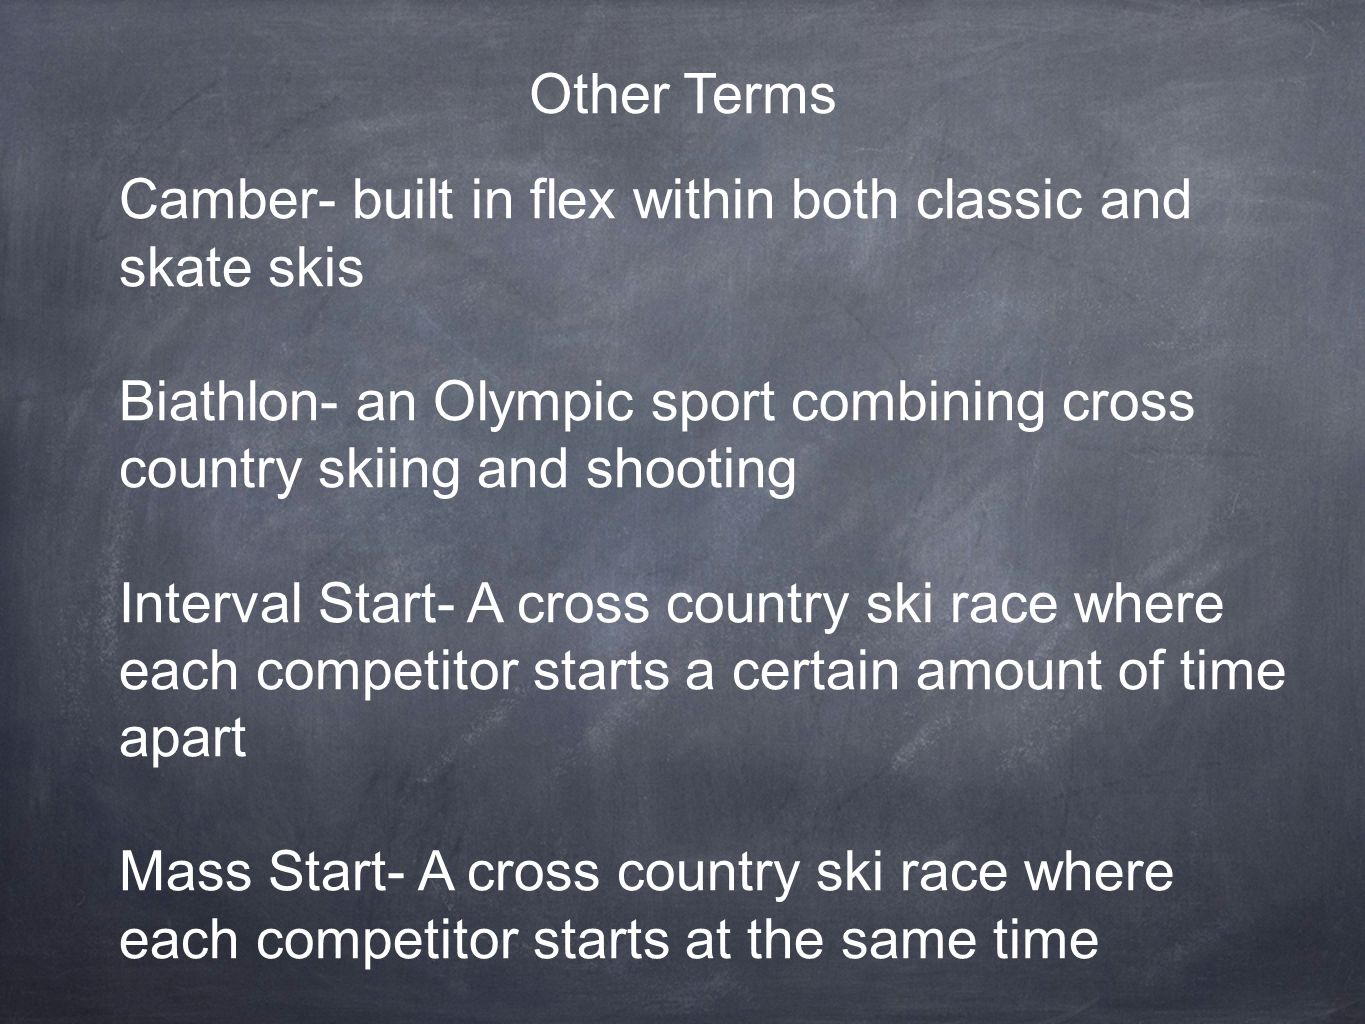 Other Terms Camber- built in flex within both classic and skate skis Biathlon- an Olympic sport combining cross country skiing and shooting Interval Start- A cross country ski race where each competitor starts a certain amount of time apart Mass Start- A cross country ski race where each competitor starts at the same time